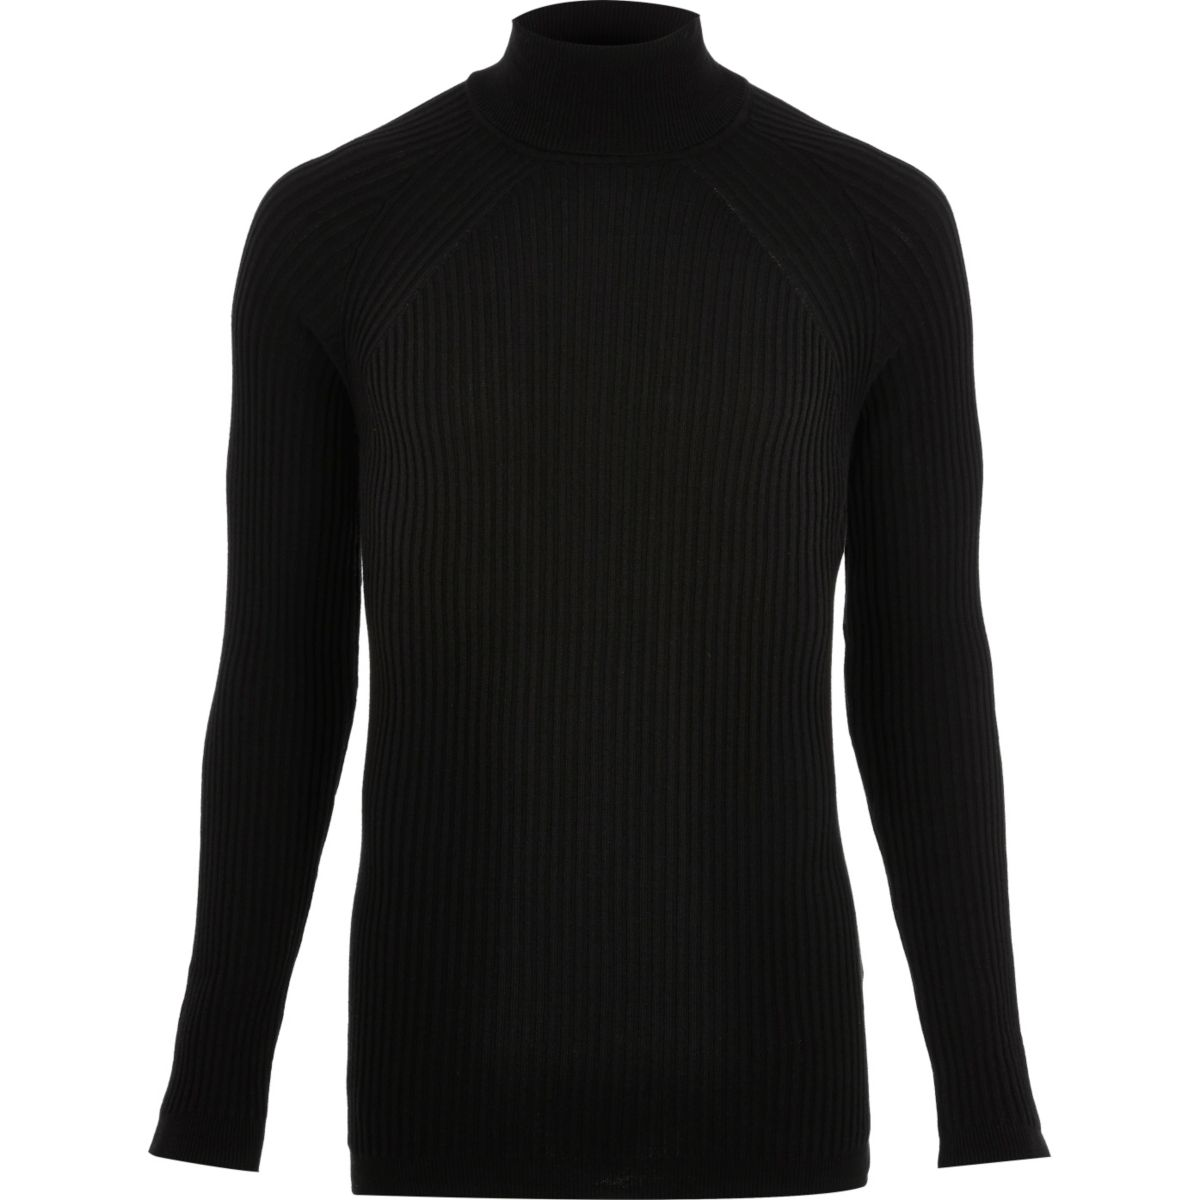 Black ribbed knit roll neck sweater